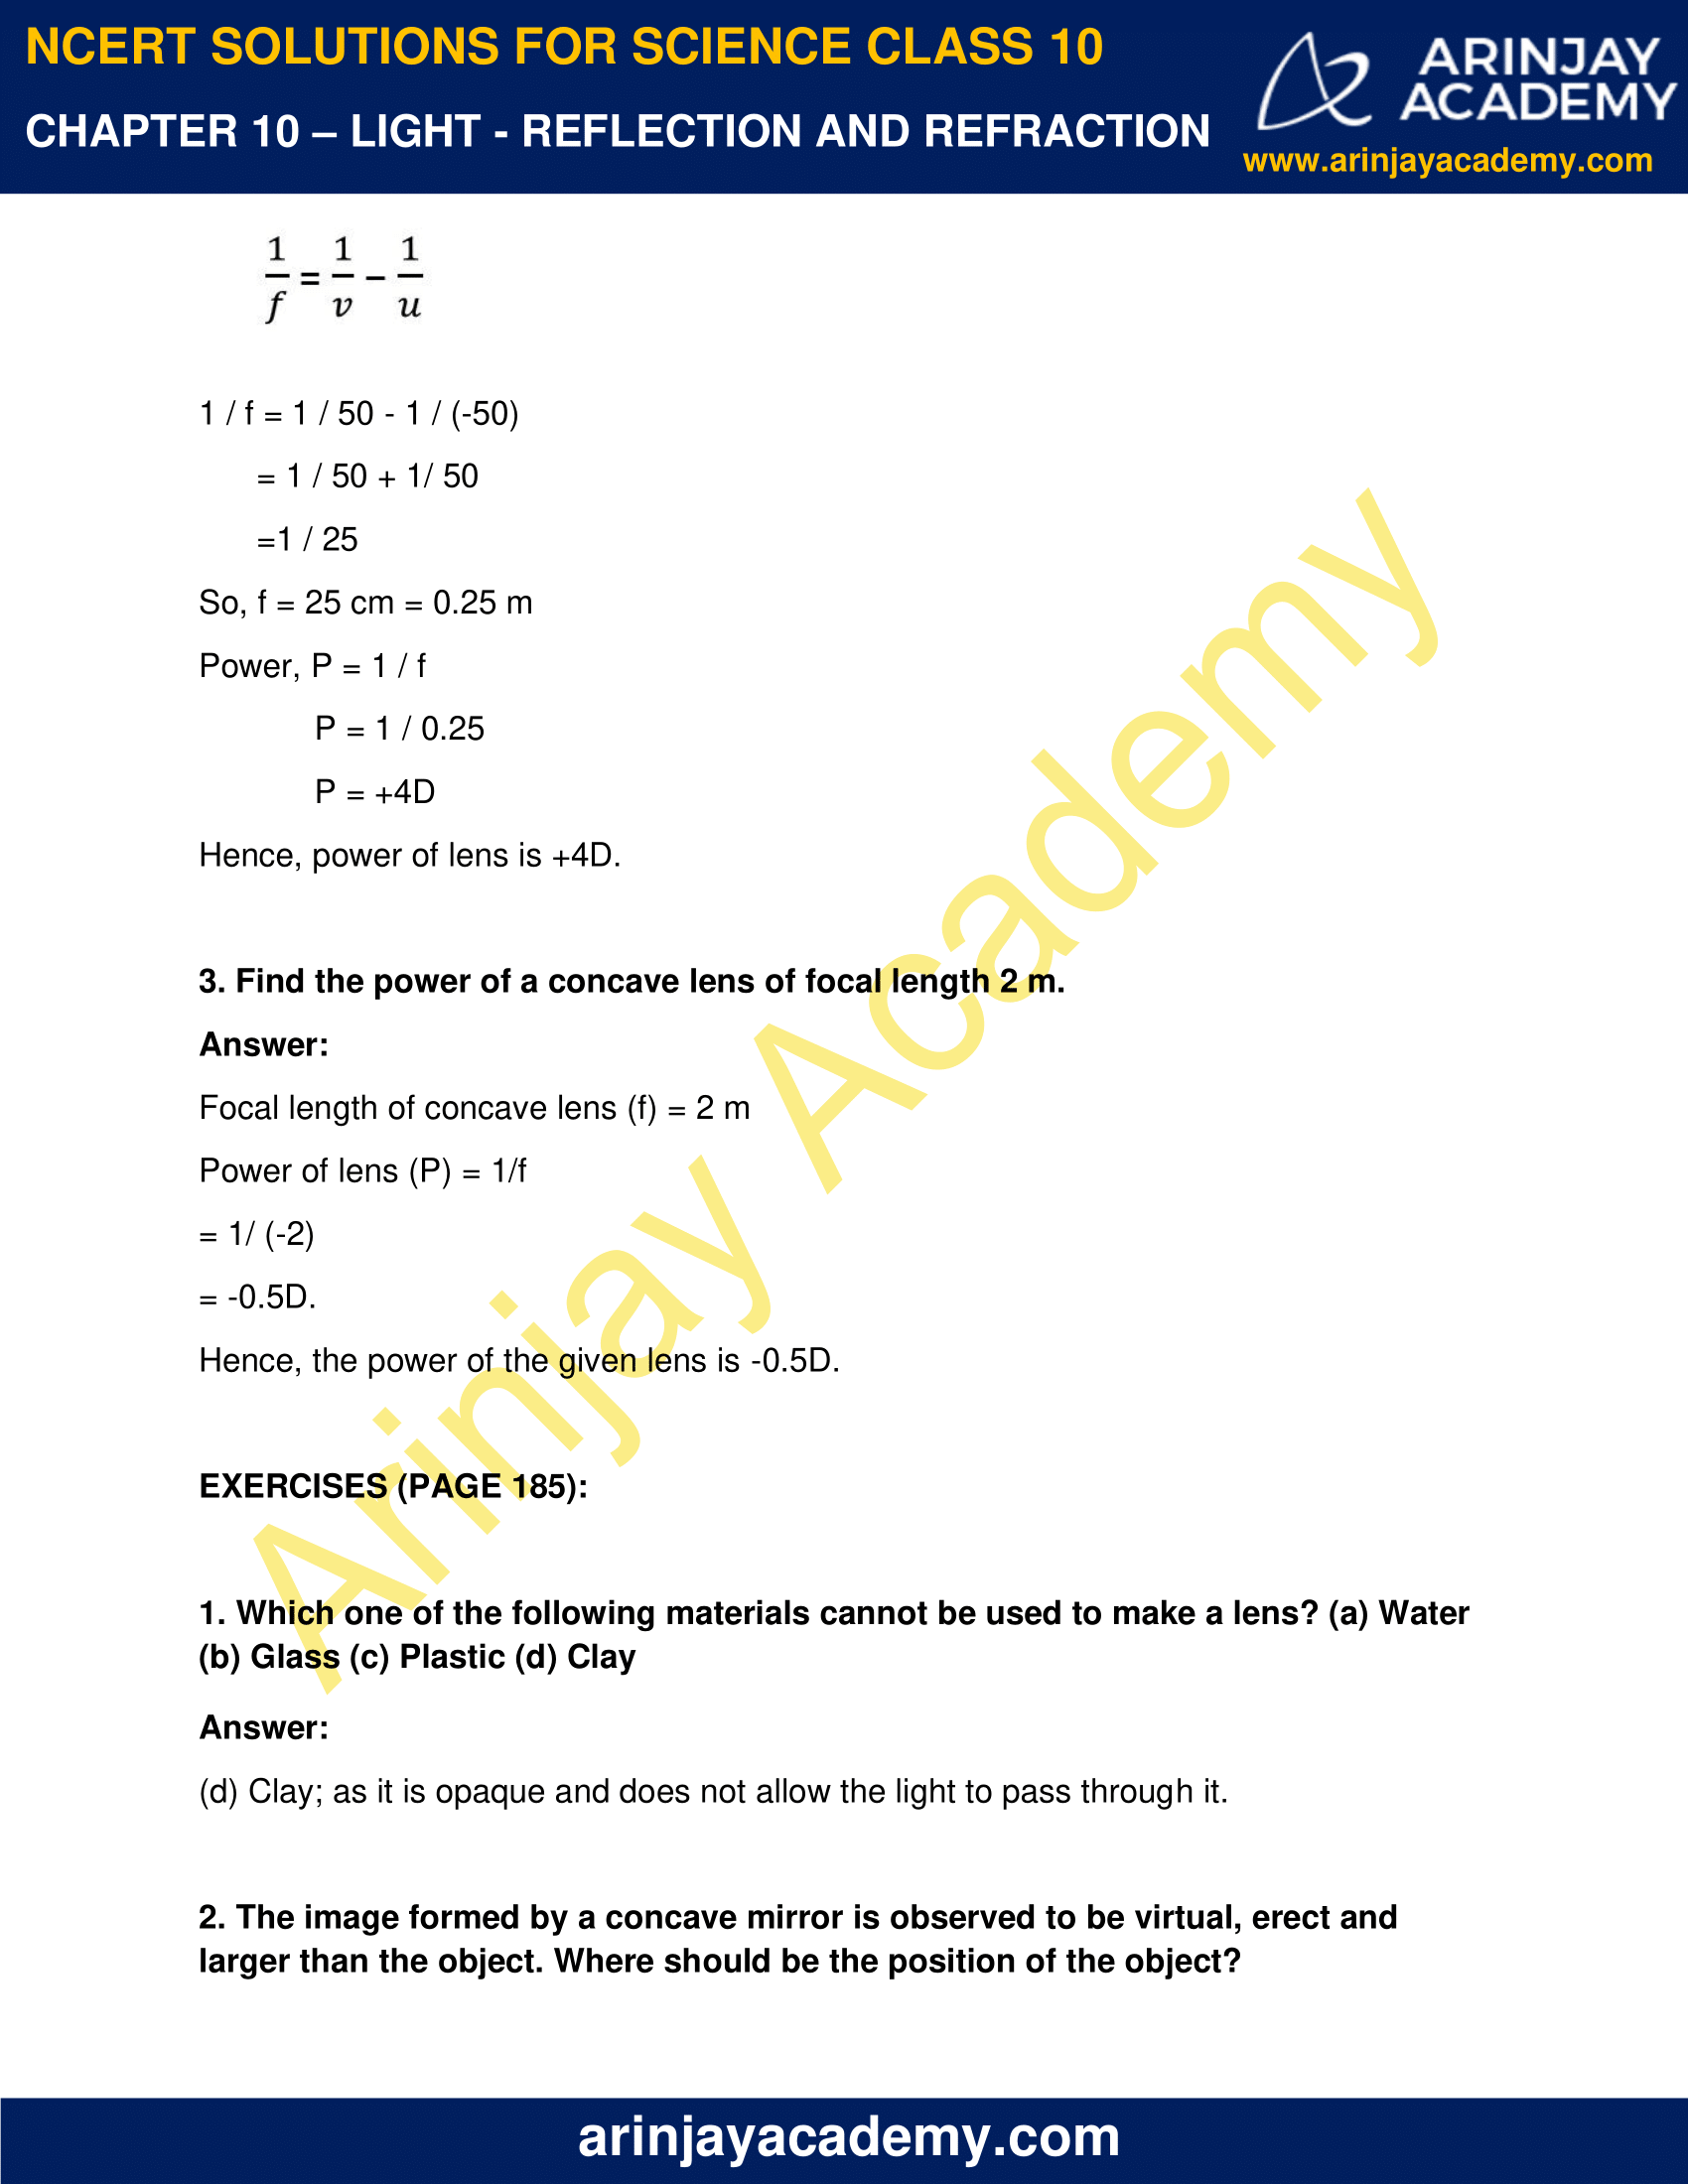 NCERT Solutions for Class 10 Science Chapter 10 image 6